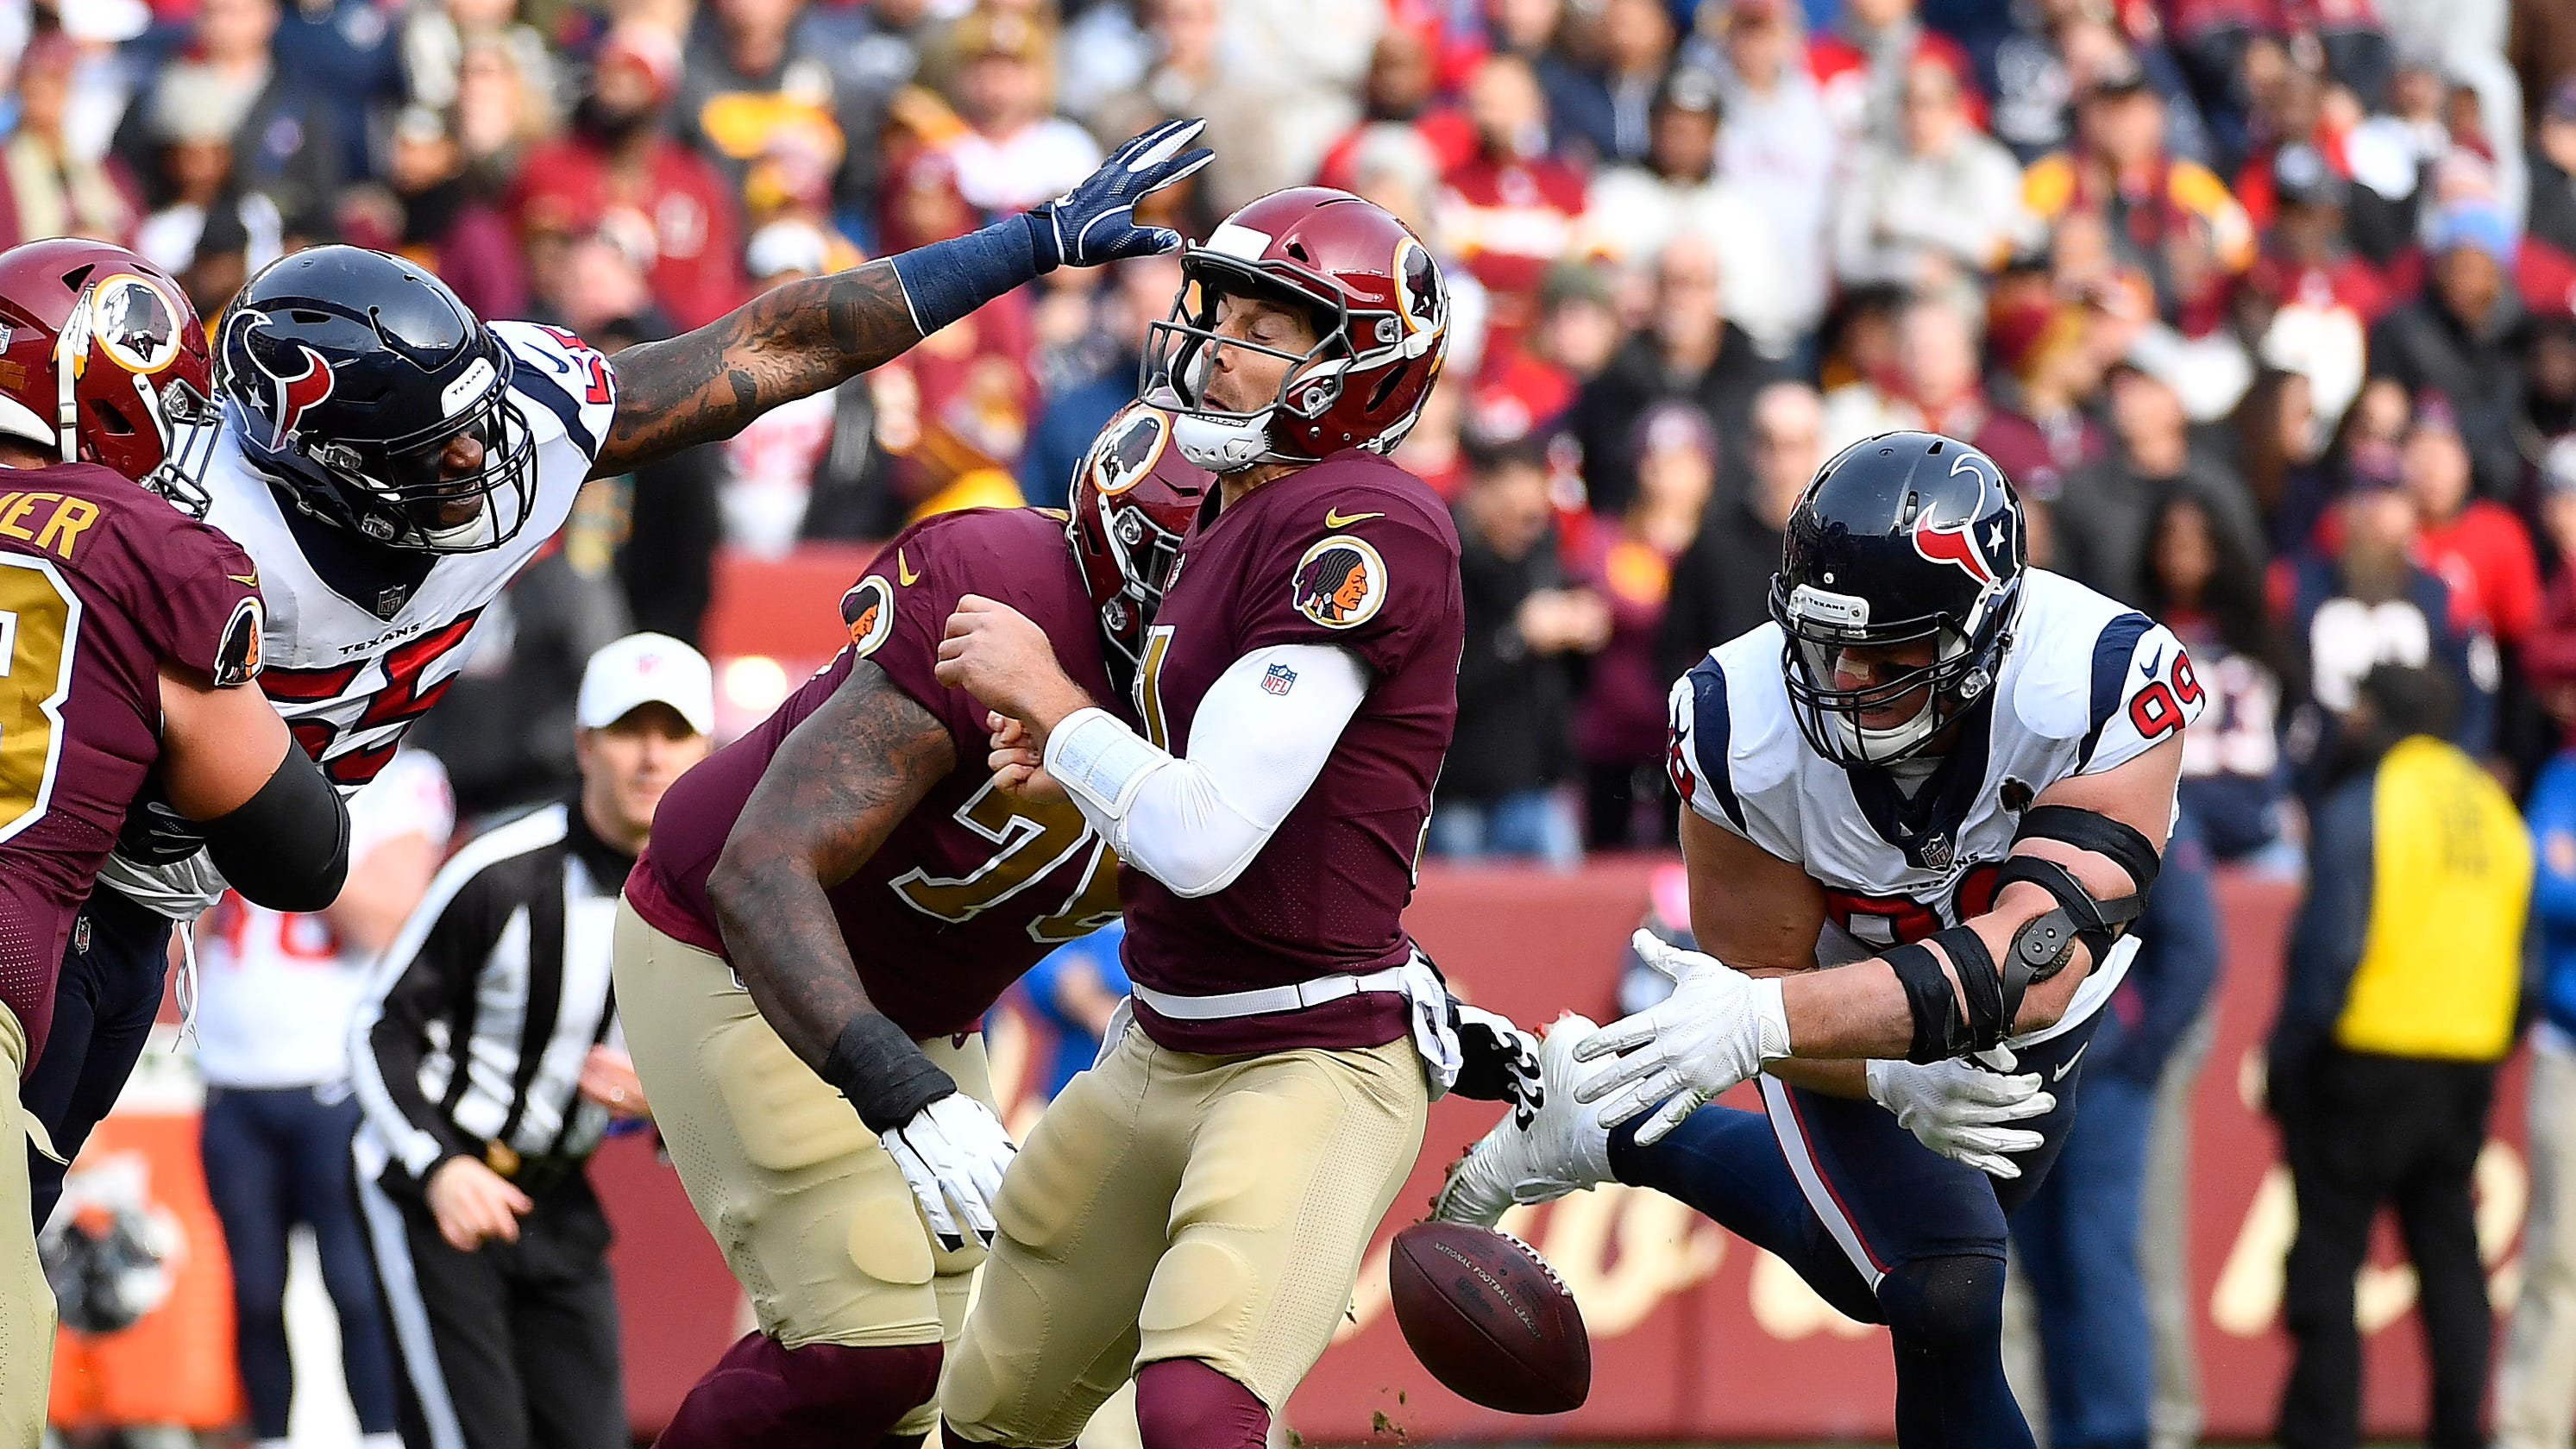 NFL: Redskins' Alex Smith continues recovery from gruesome leg injury